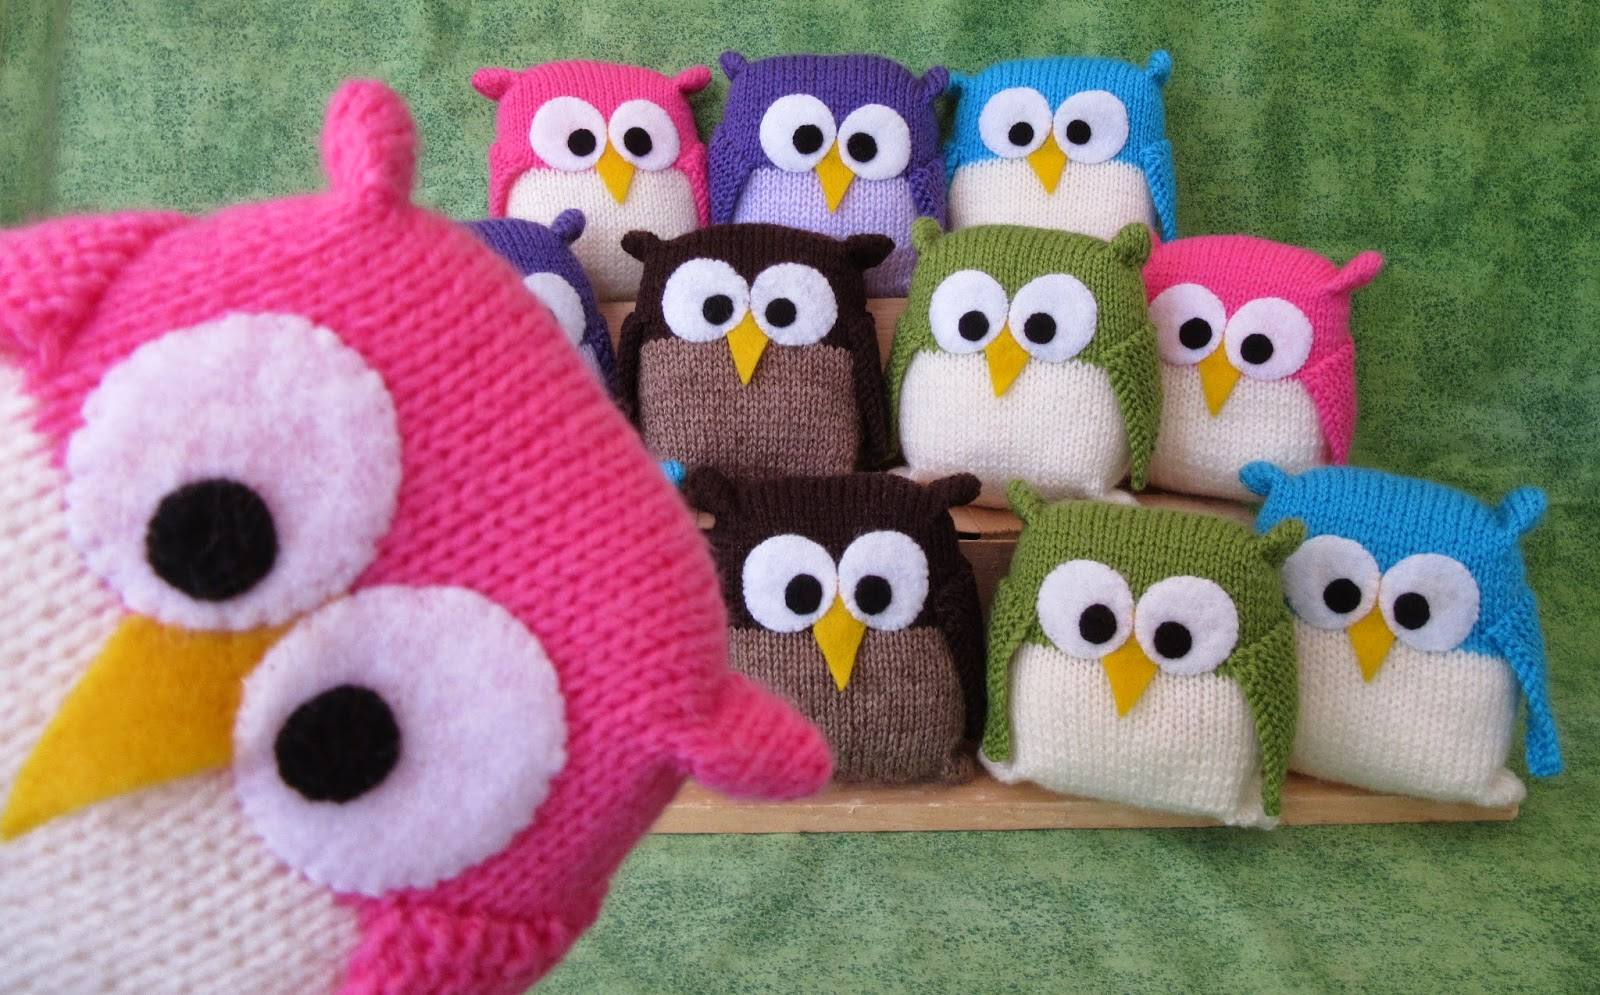 knitted owls sitting in rows with one owl close up in bottom left corner